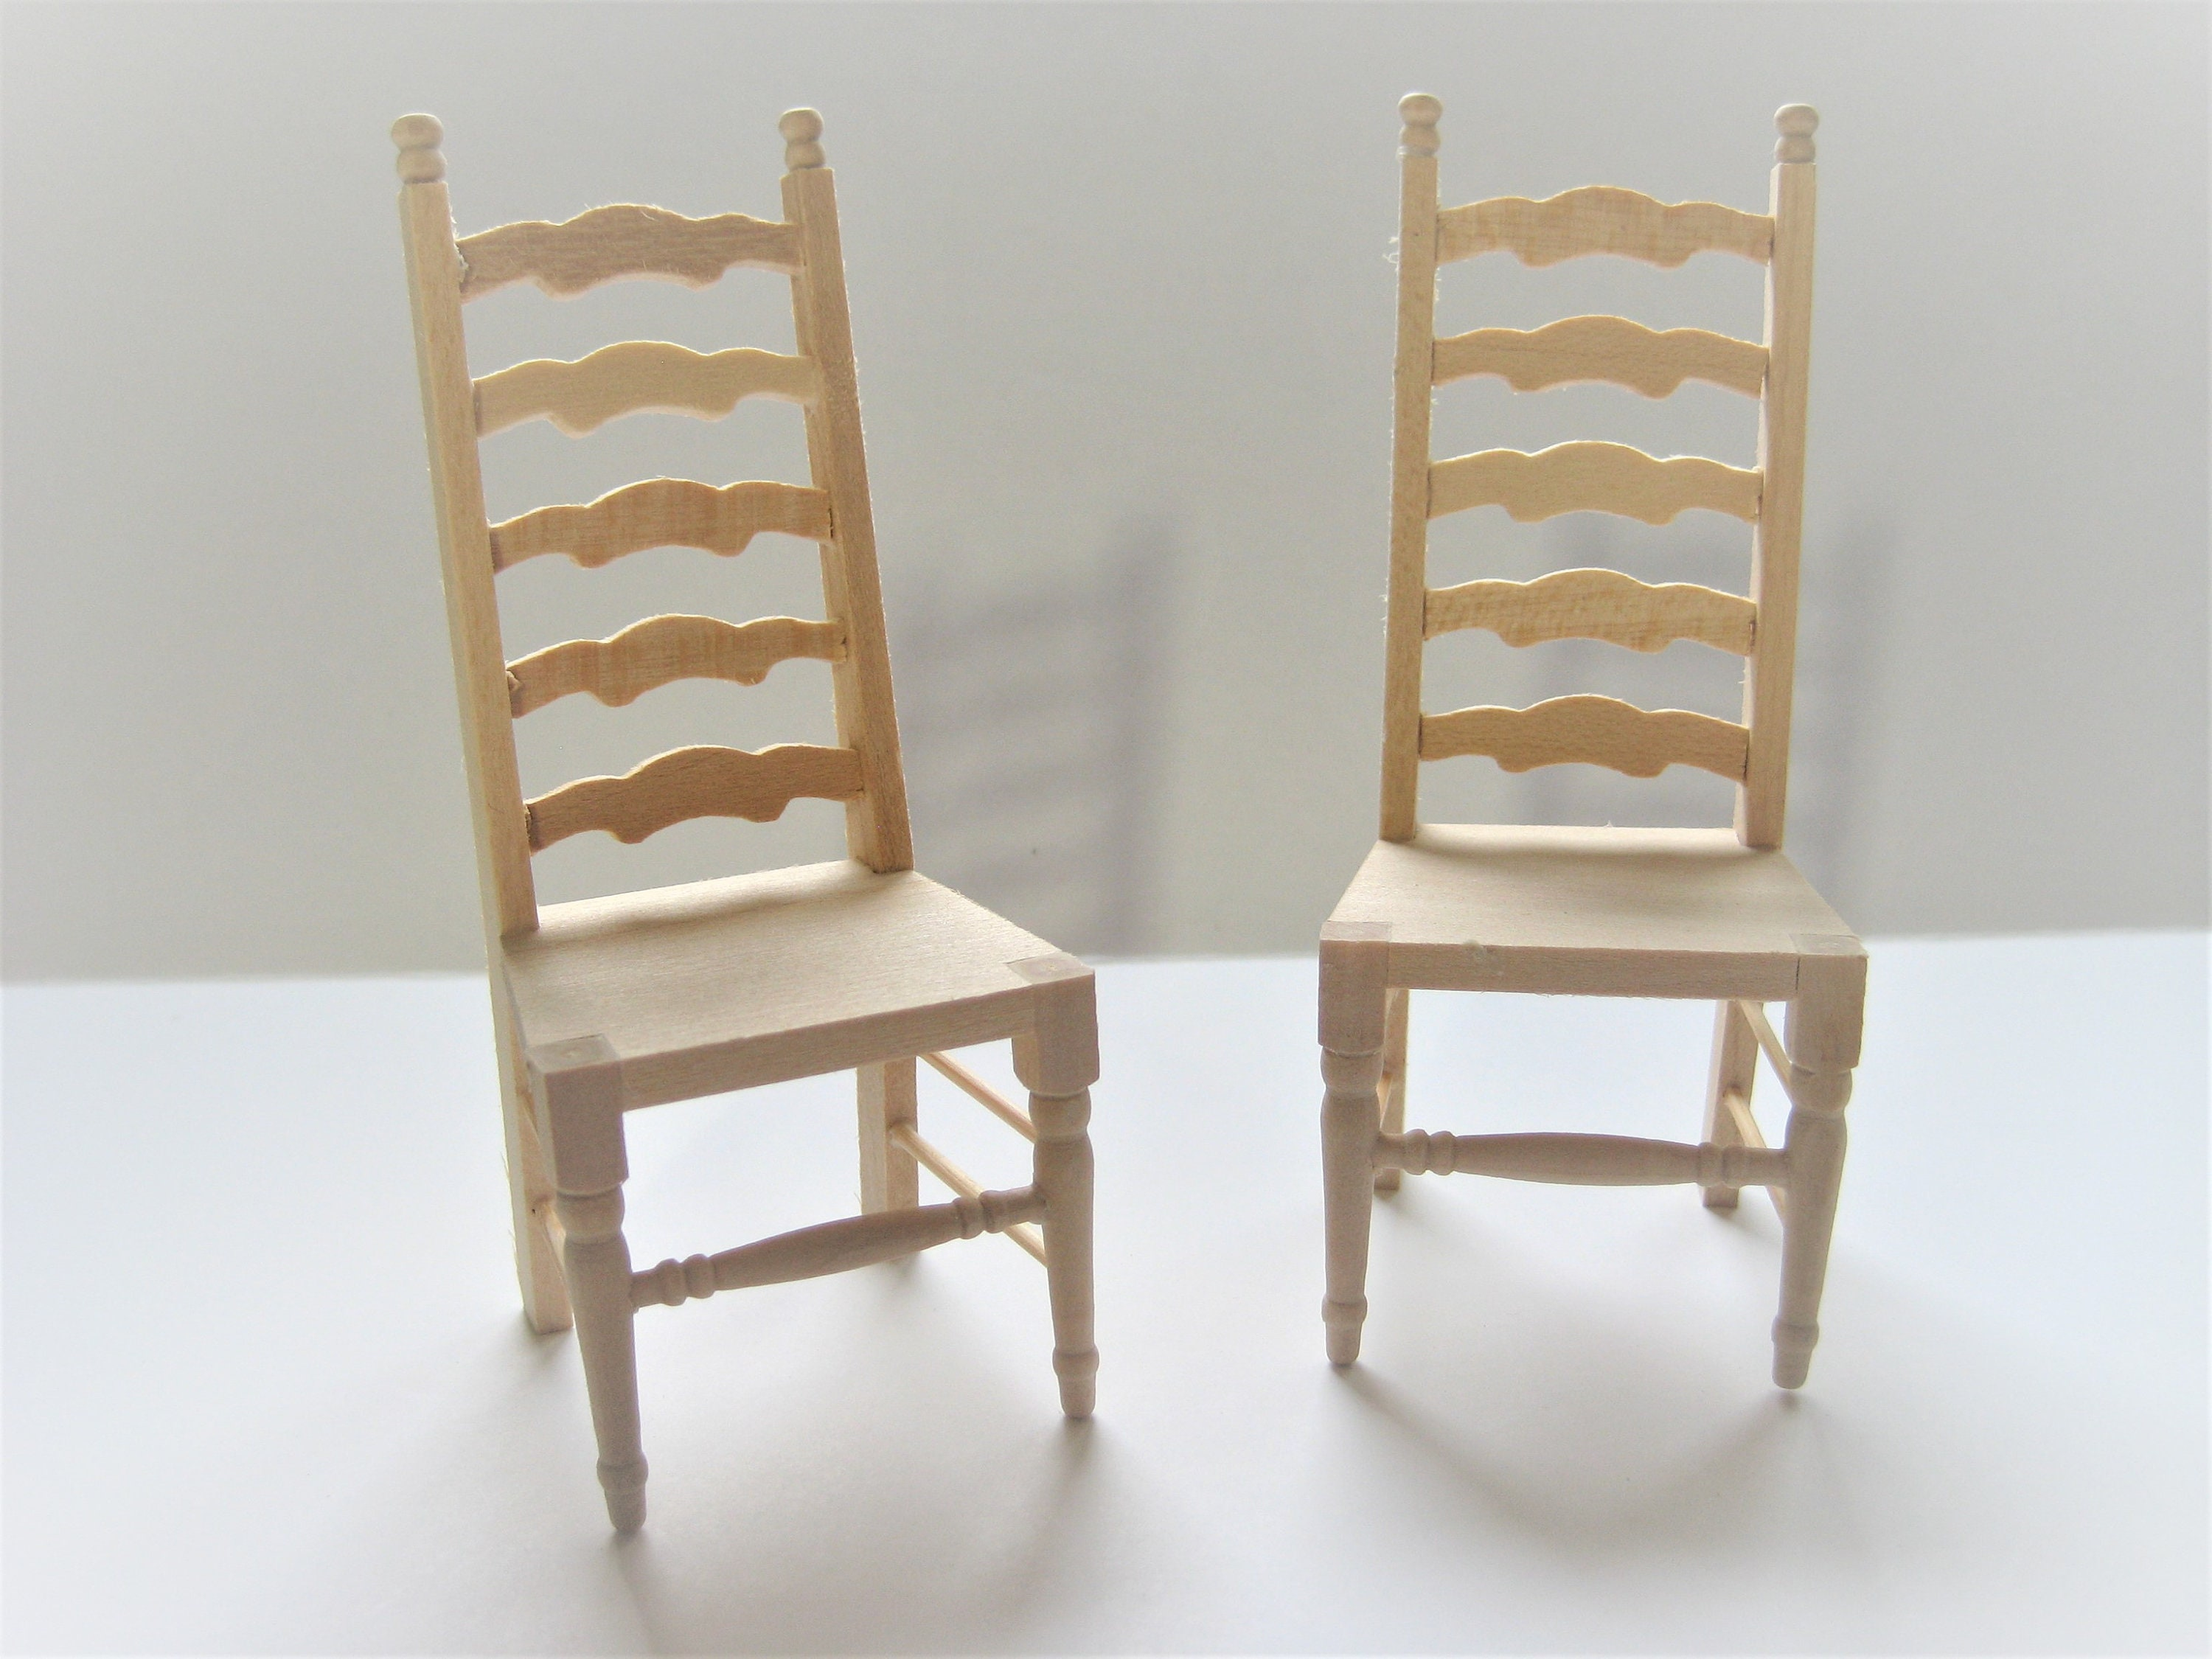 Dollhouse Miniature X2 Unfinished Ladderback Chairs For Kitchen Or Dining Room 112 Scale